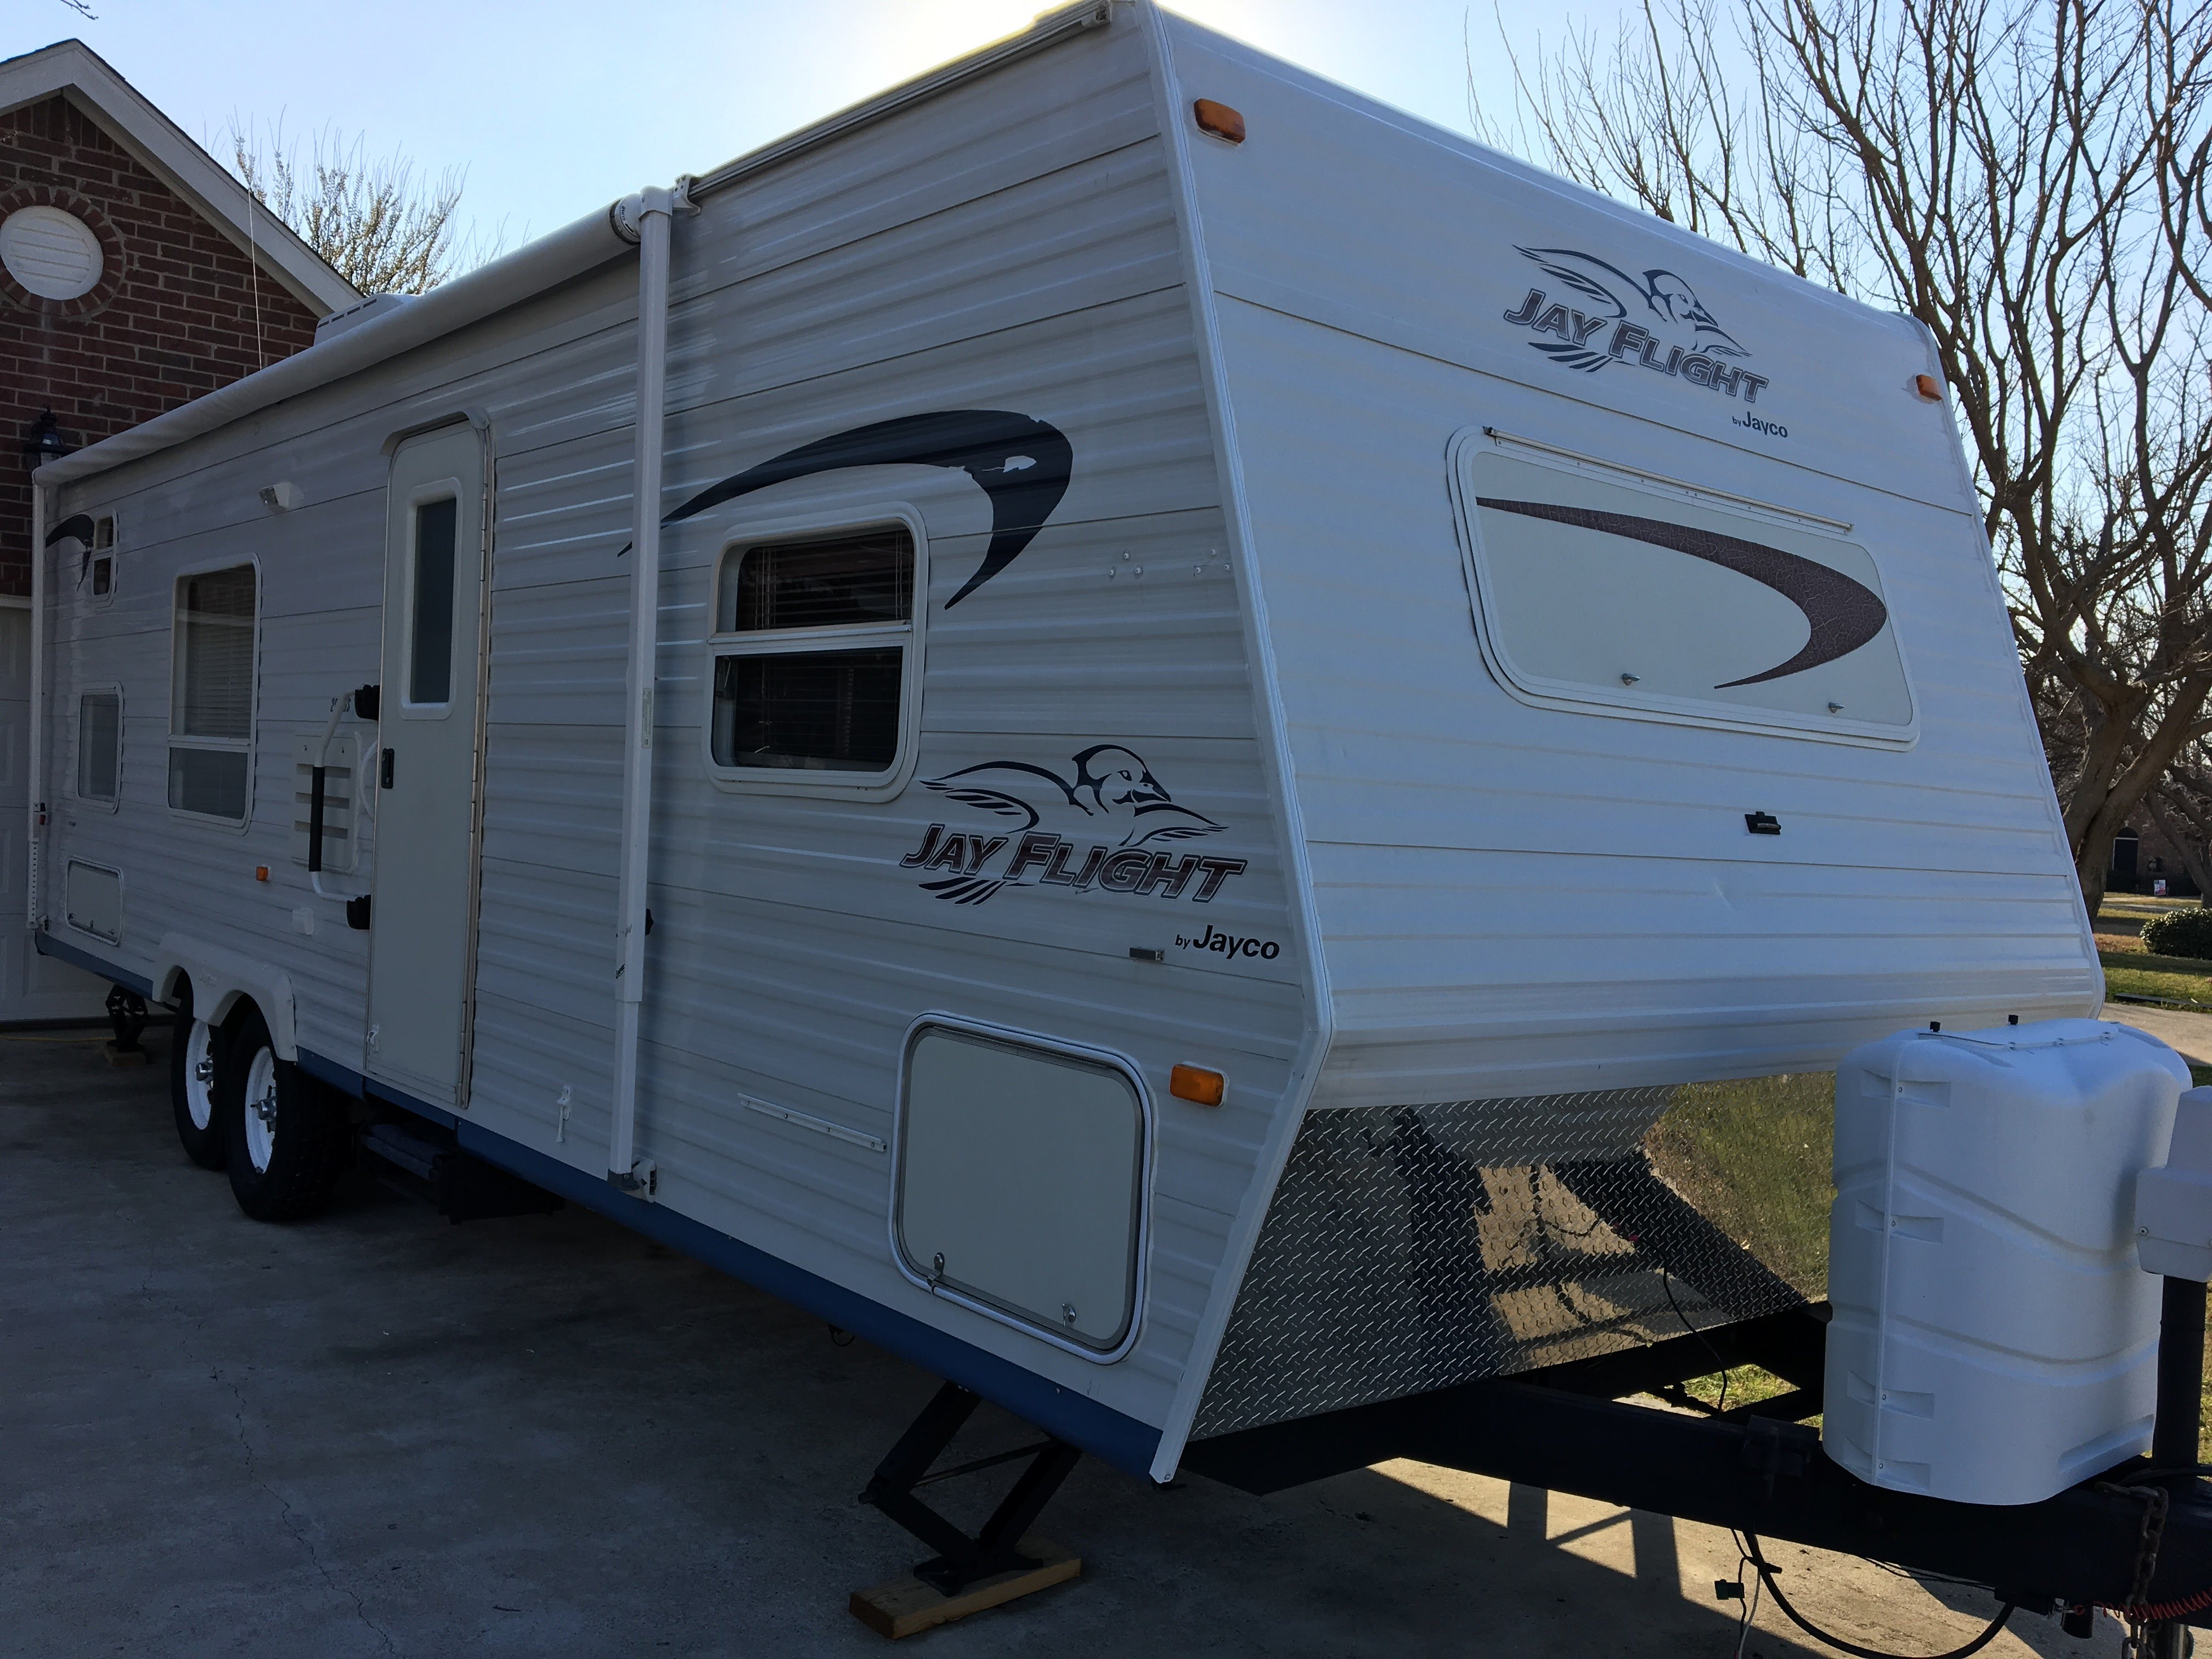 Our beloved travel trailer needs a new home.